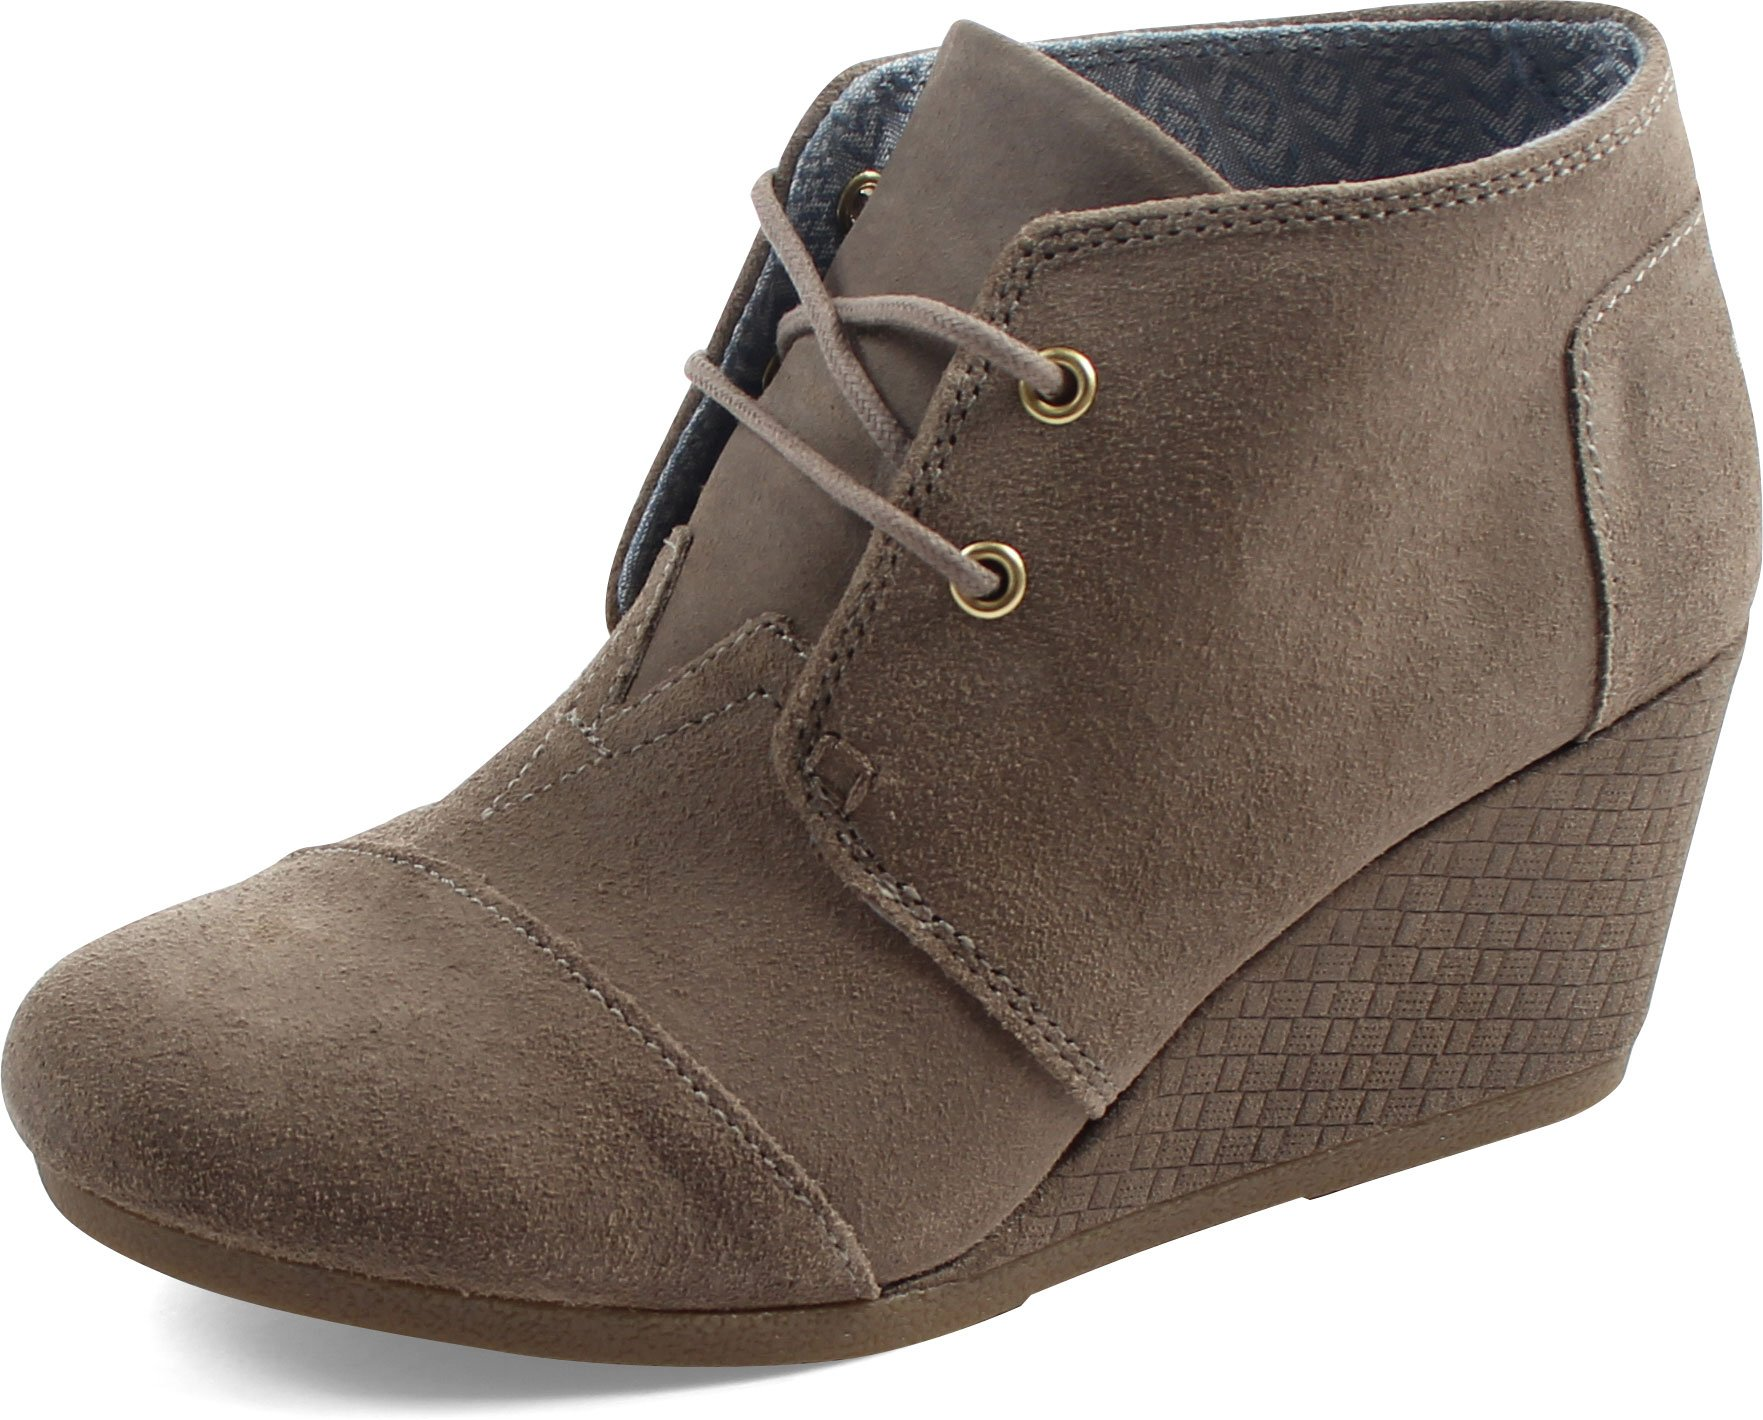 Toms Women's Desert Wedge Casual Shoe (7.5 B(M) US, Desert Taupe Distressed Suede with Embossed Wedge)